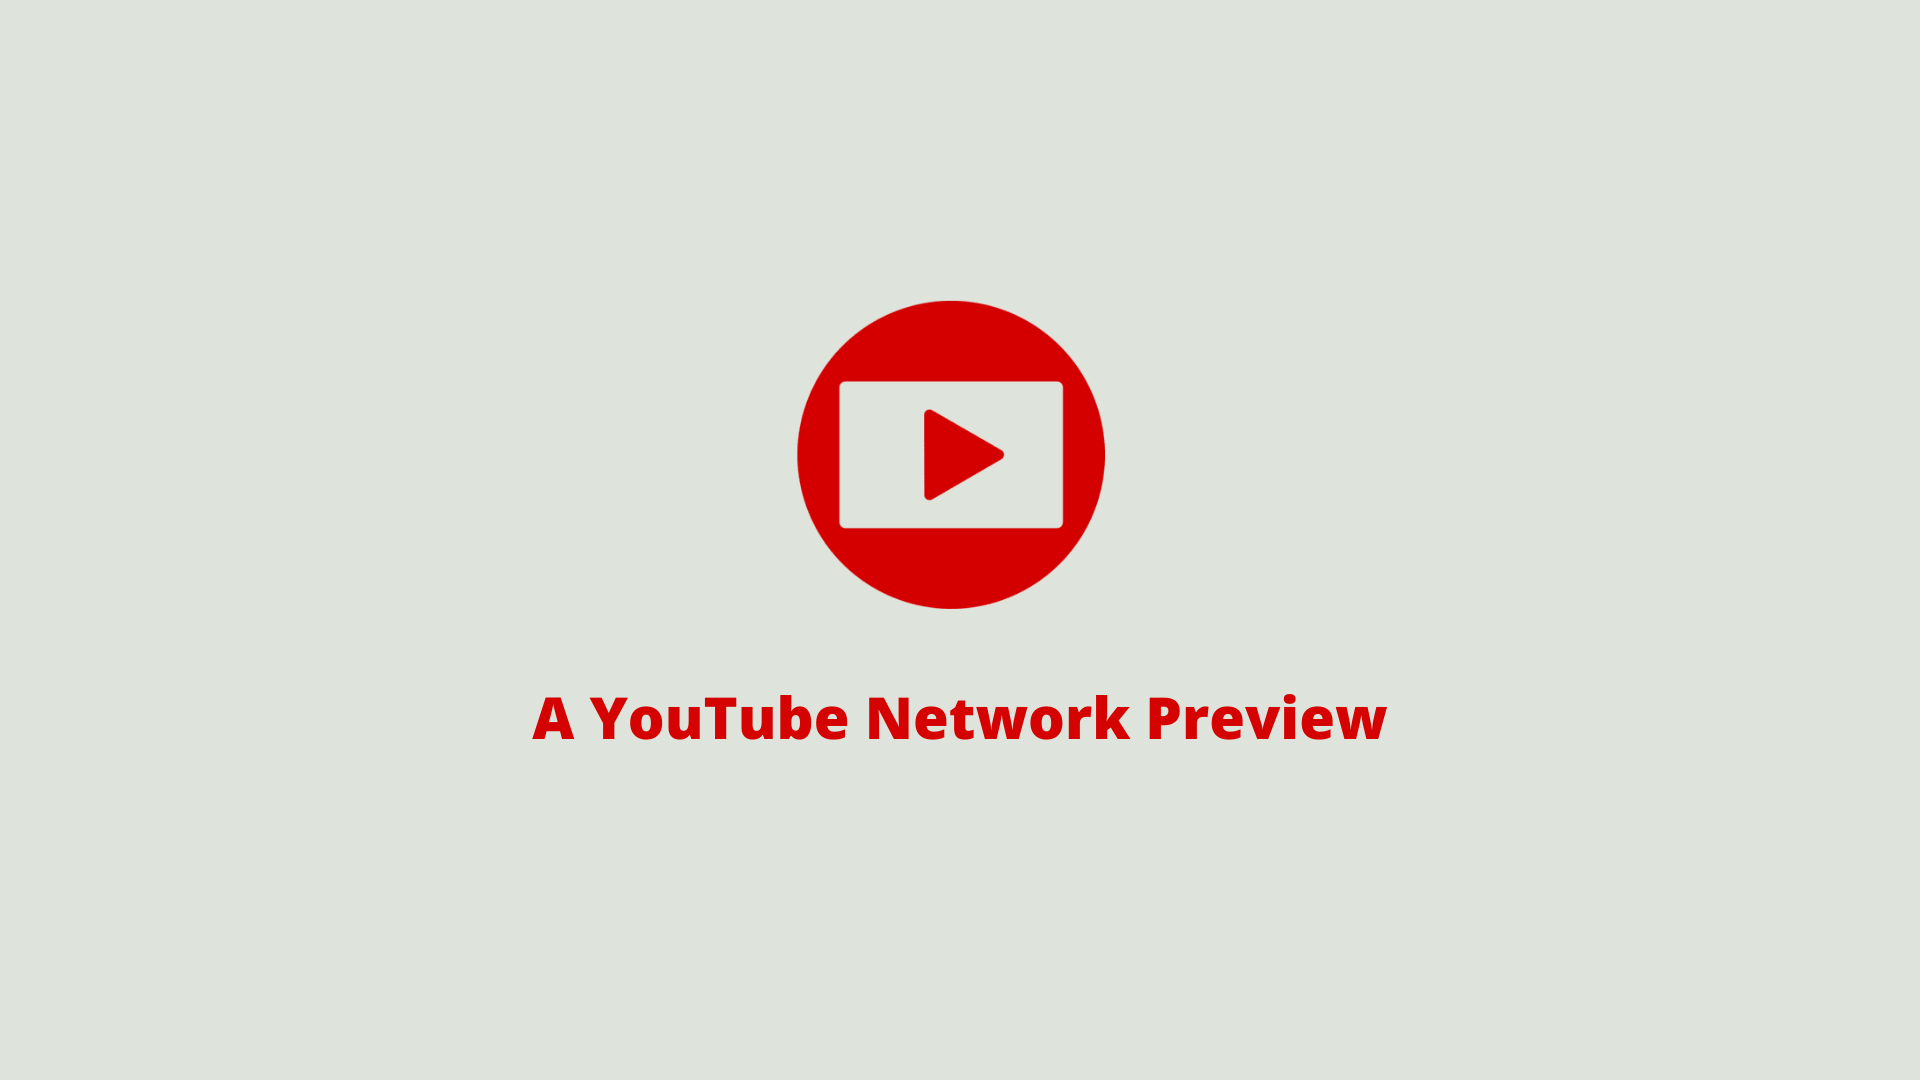 Why is YouTube Network important?